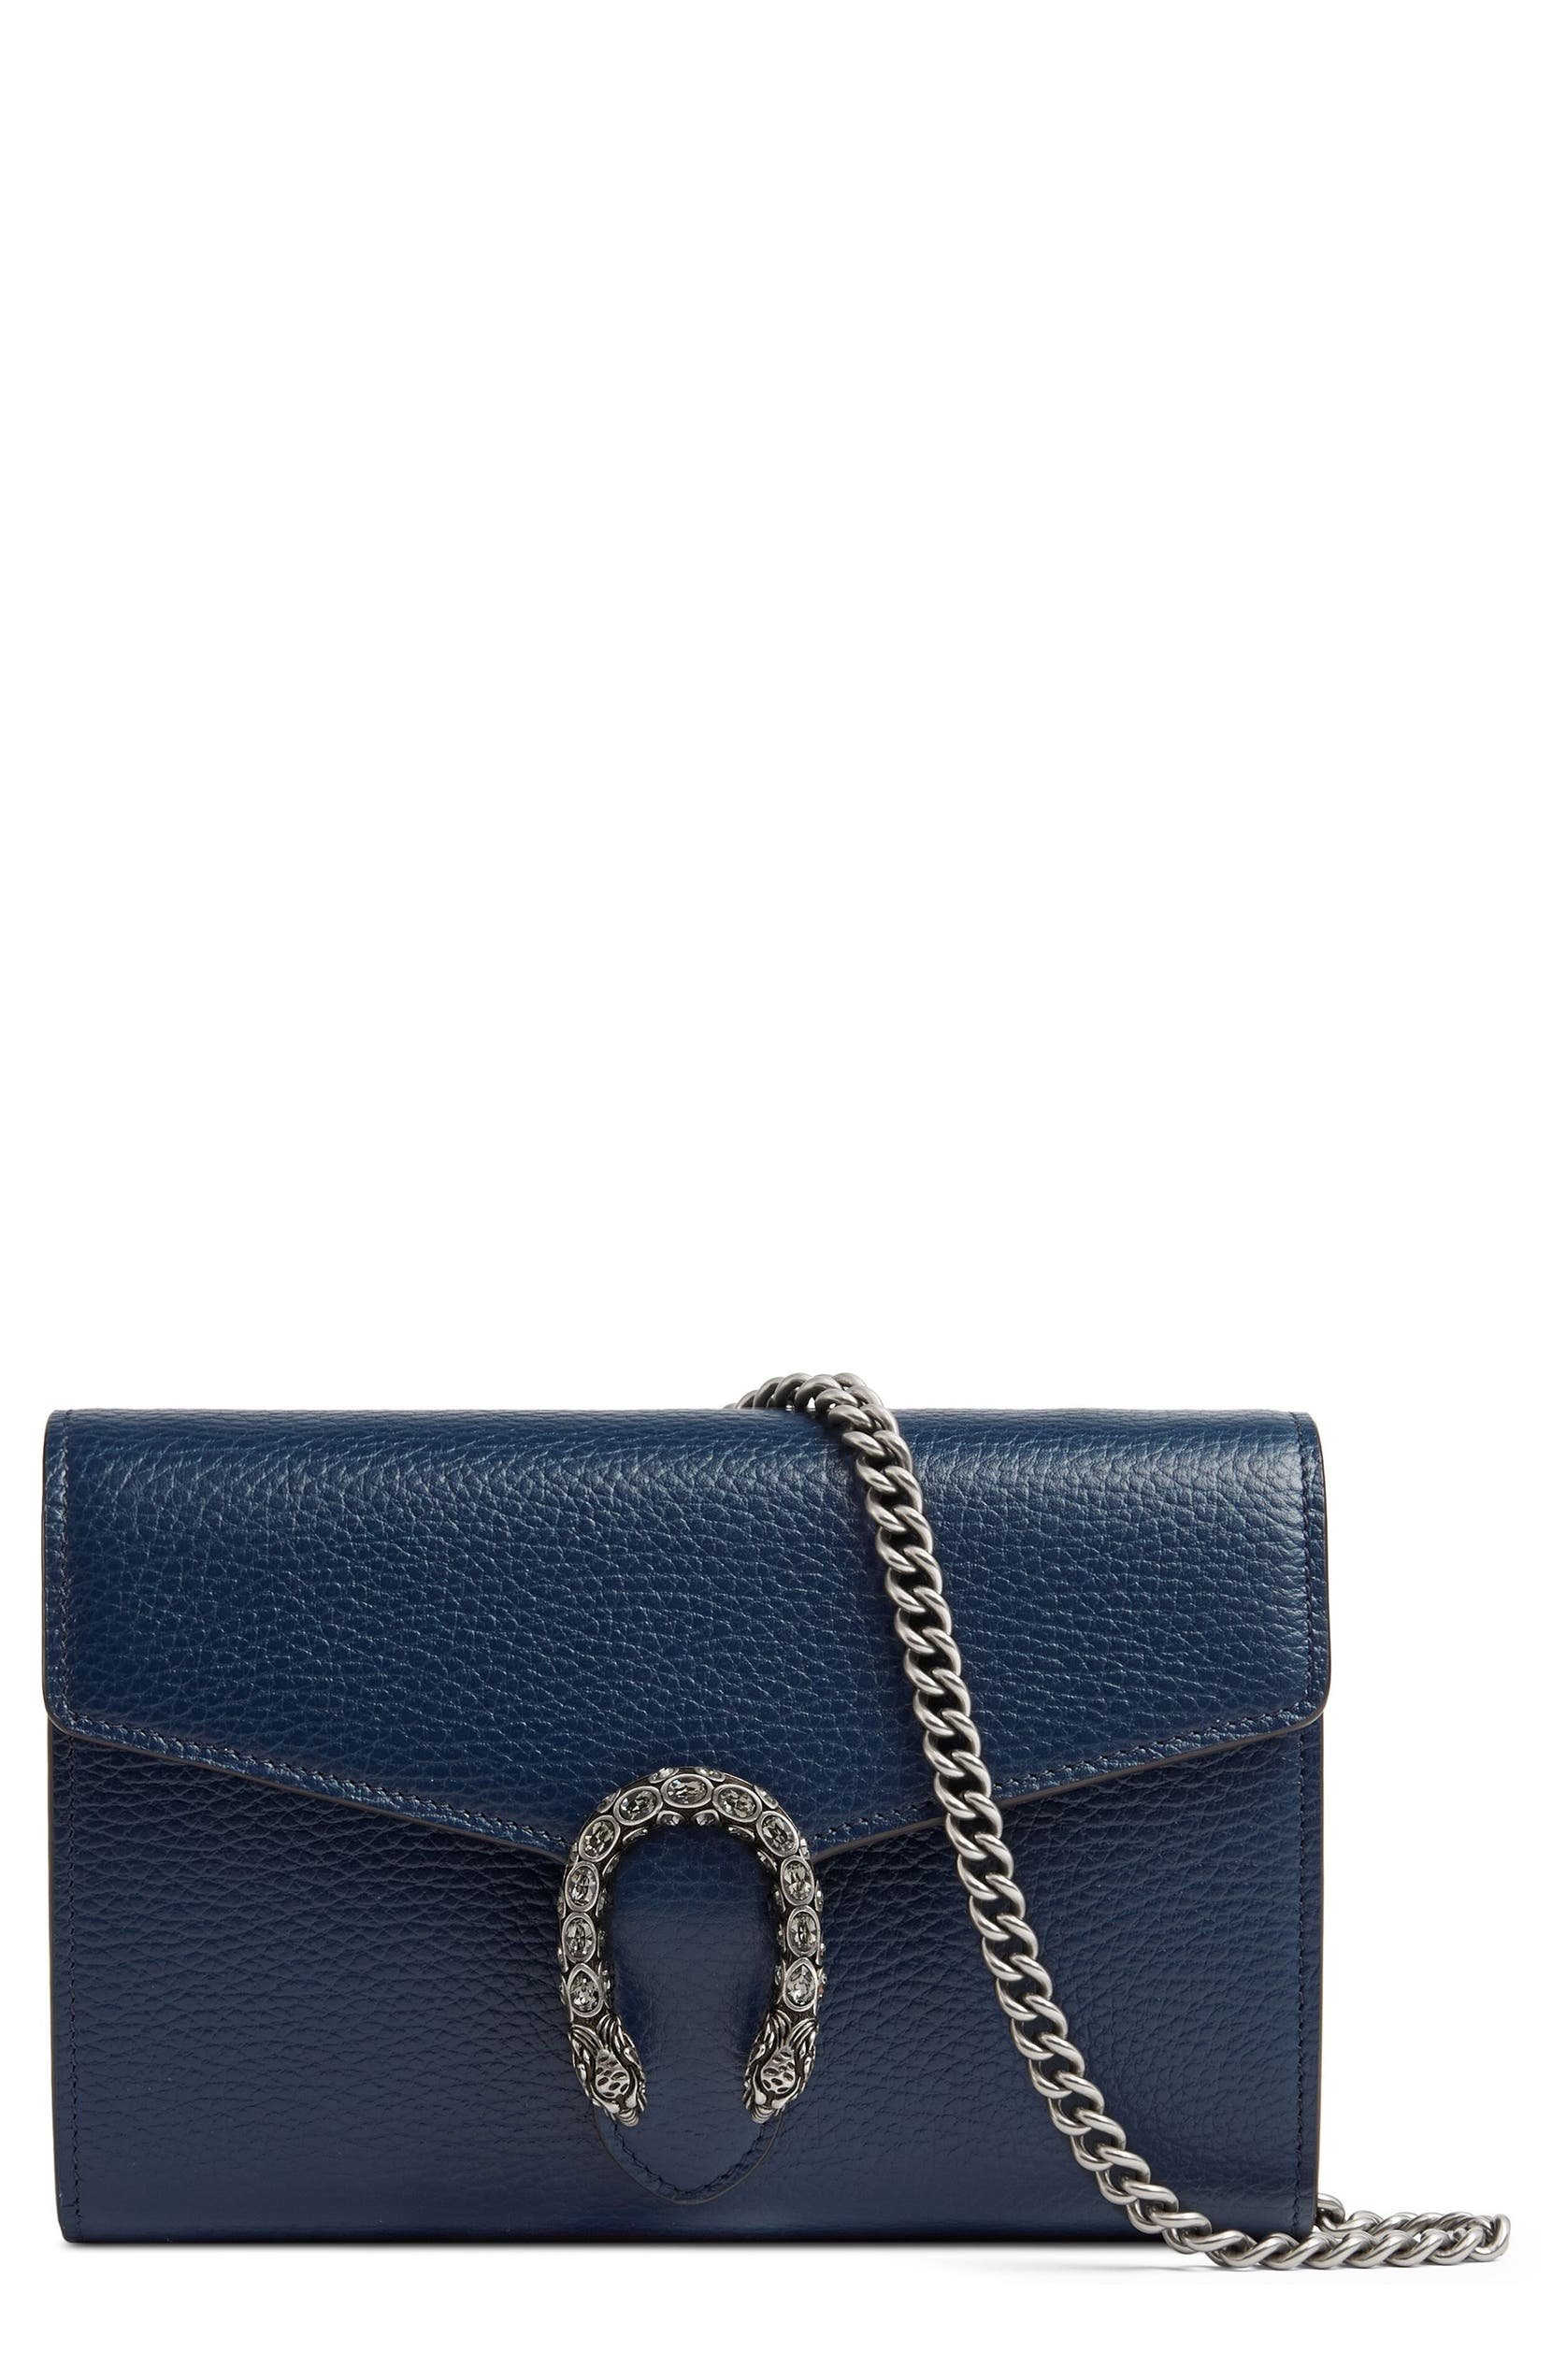 823f067df19fb3 Gucci Dionysus Leather Wallet on a Chain | Nordstrom